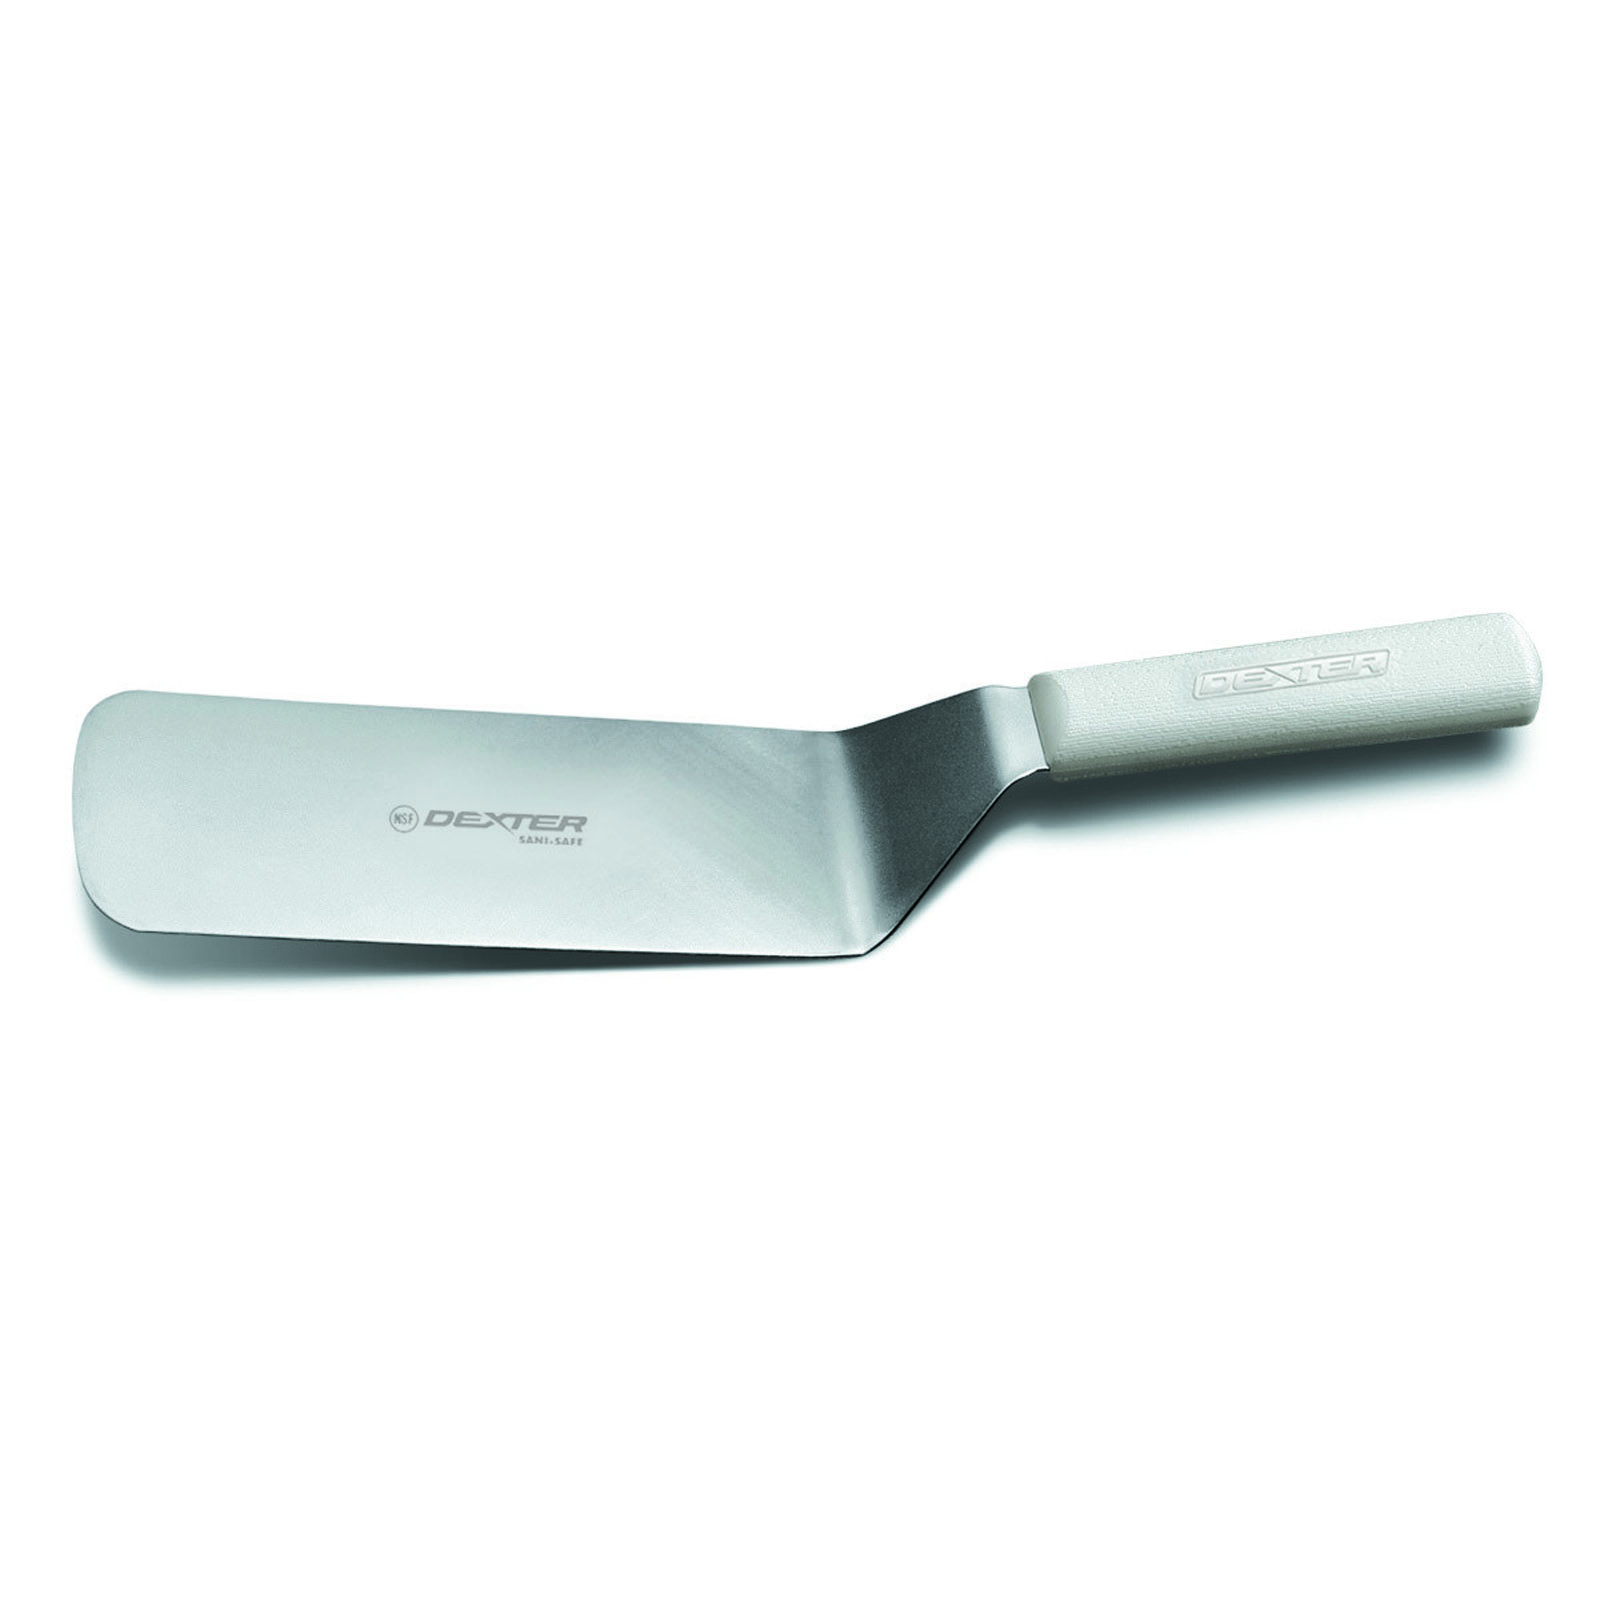 Dexter Russell S286-8PCP turner, solid, stainless steel